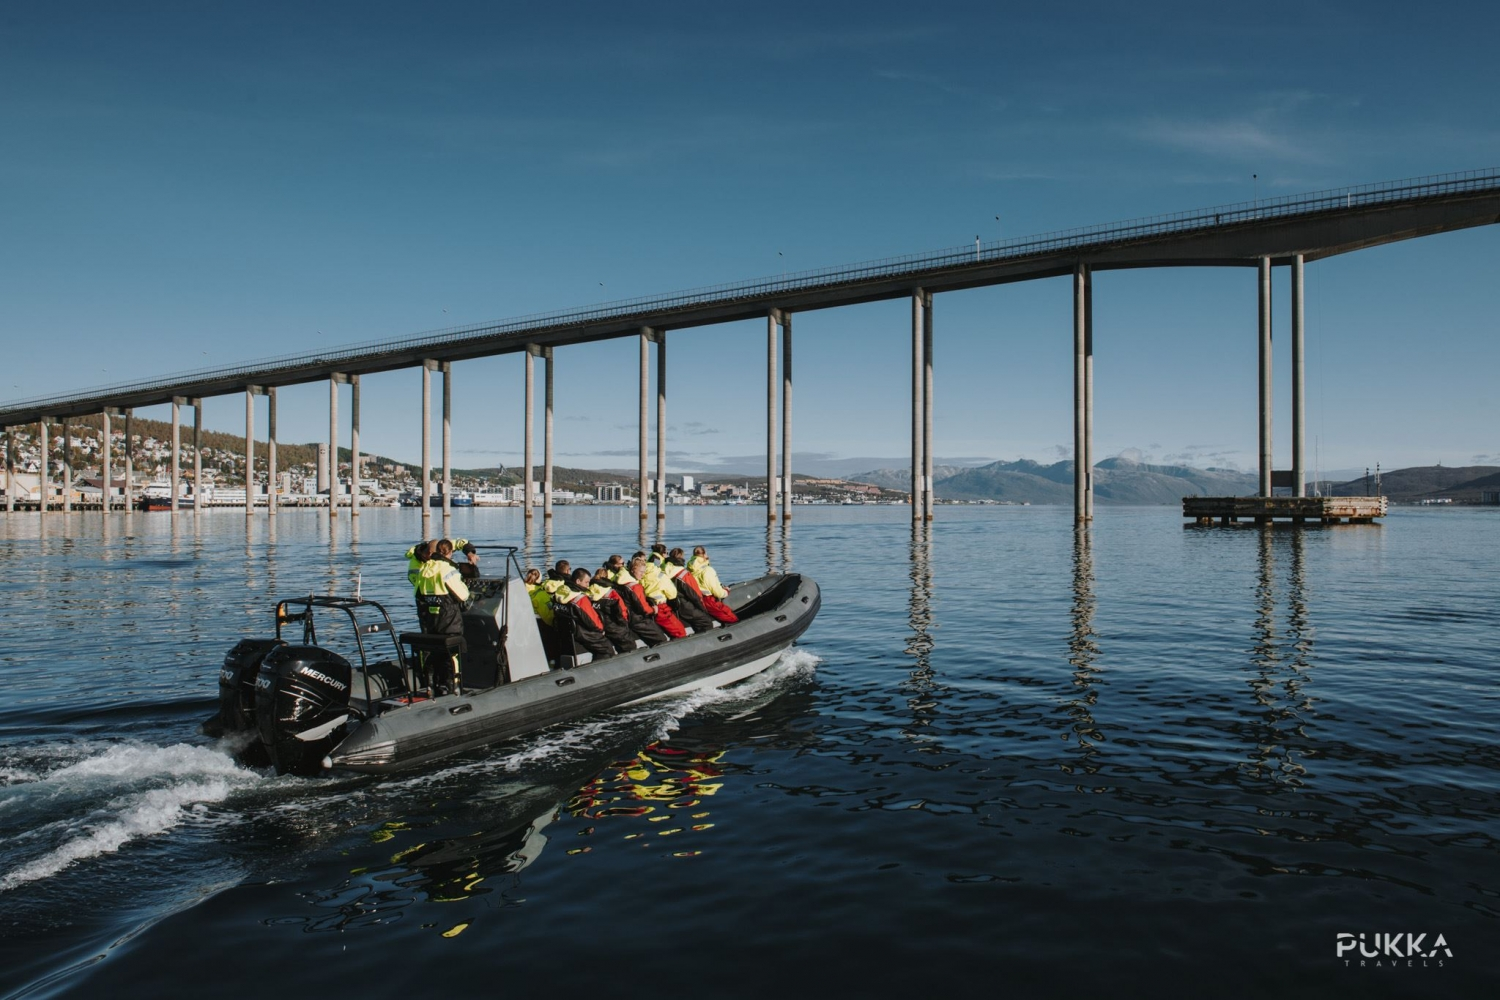 RIB about to drive under the Tromsø bridge